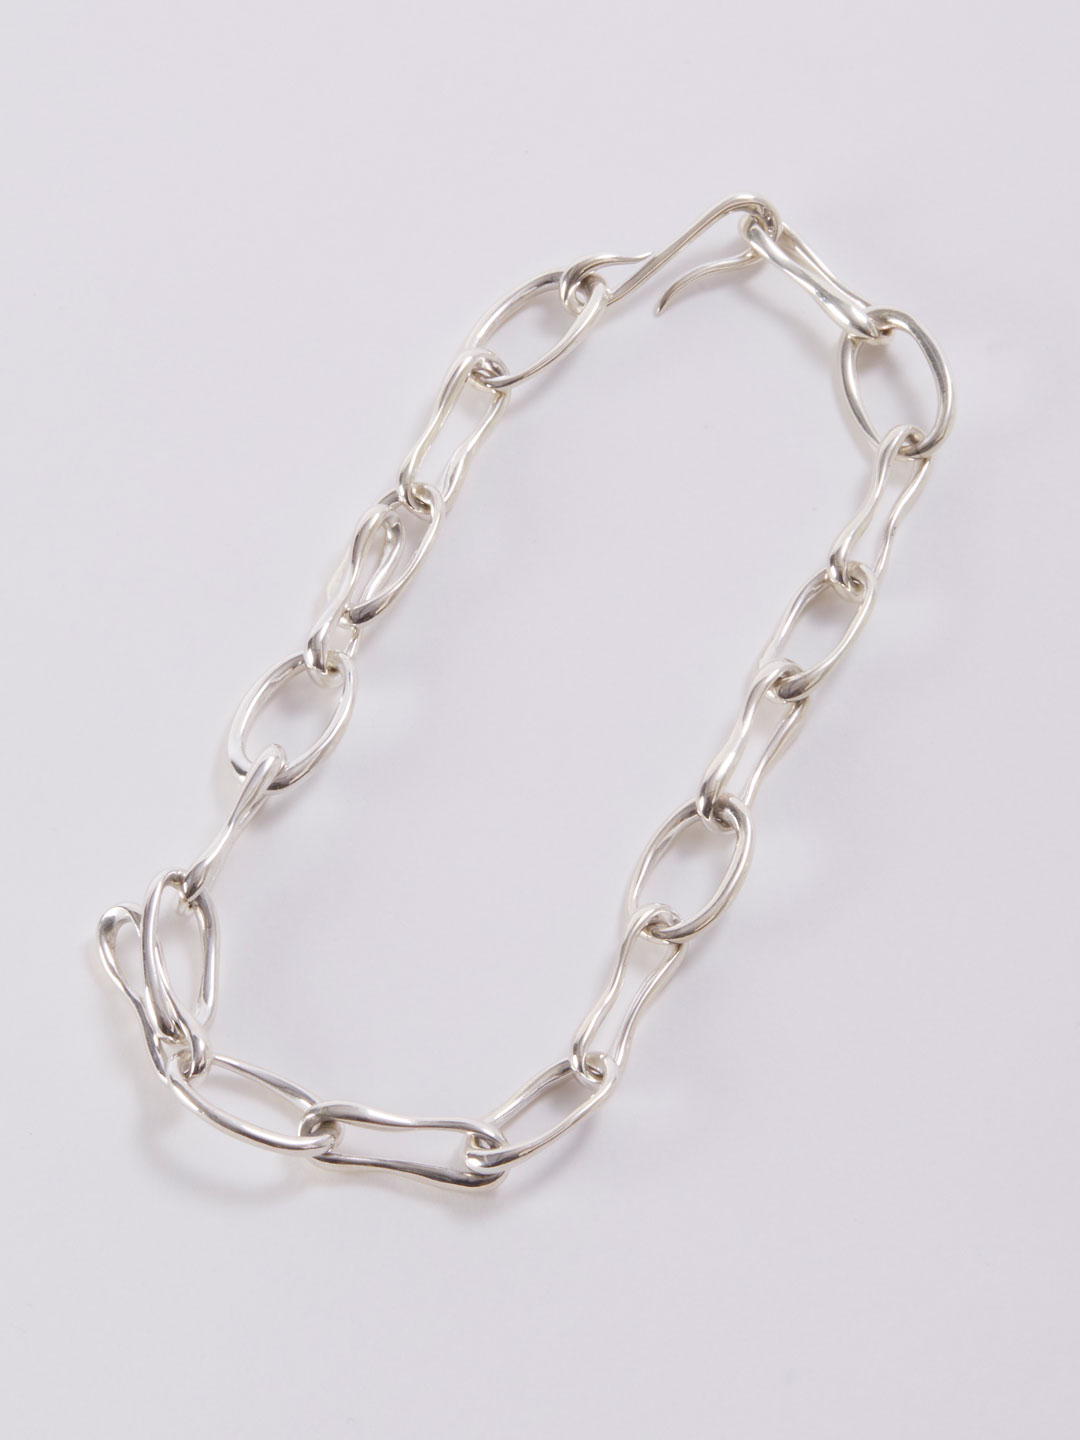 Roman Chain Collar Necklace - Silver